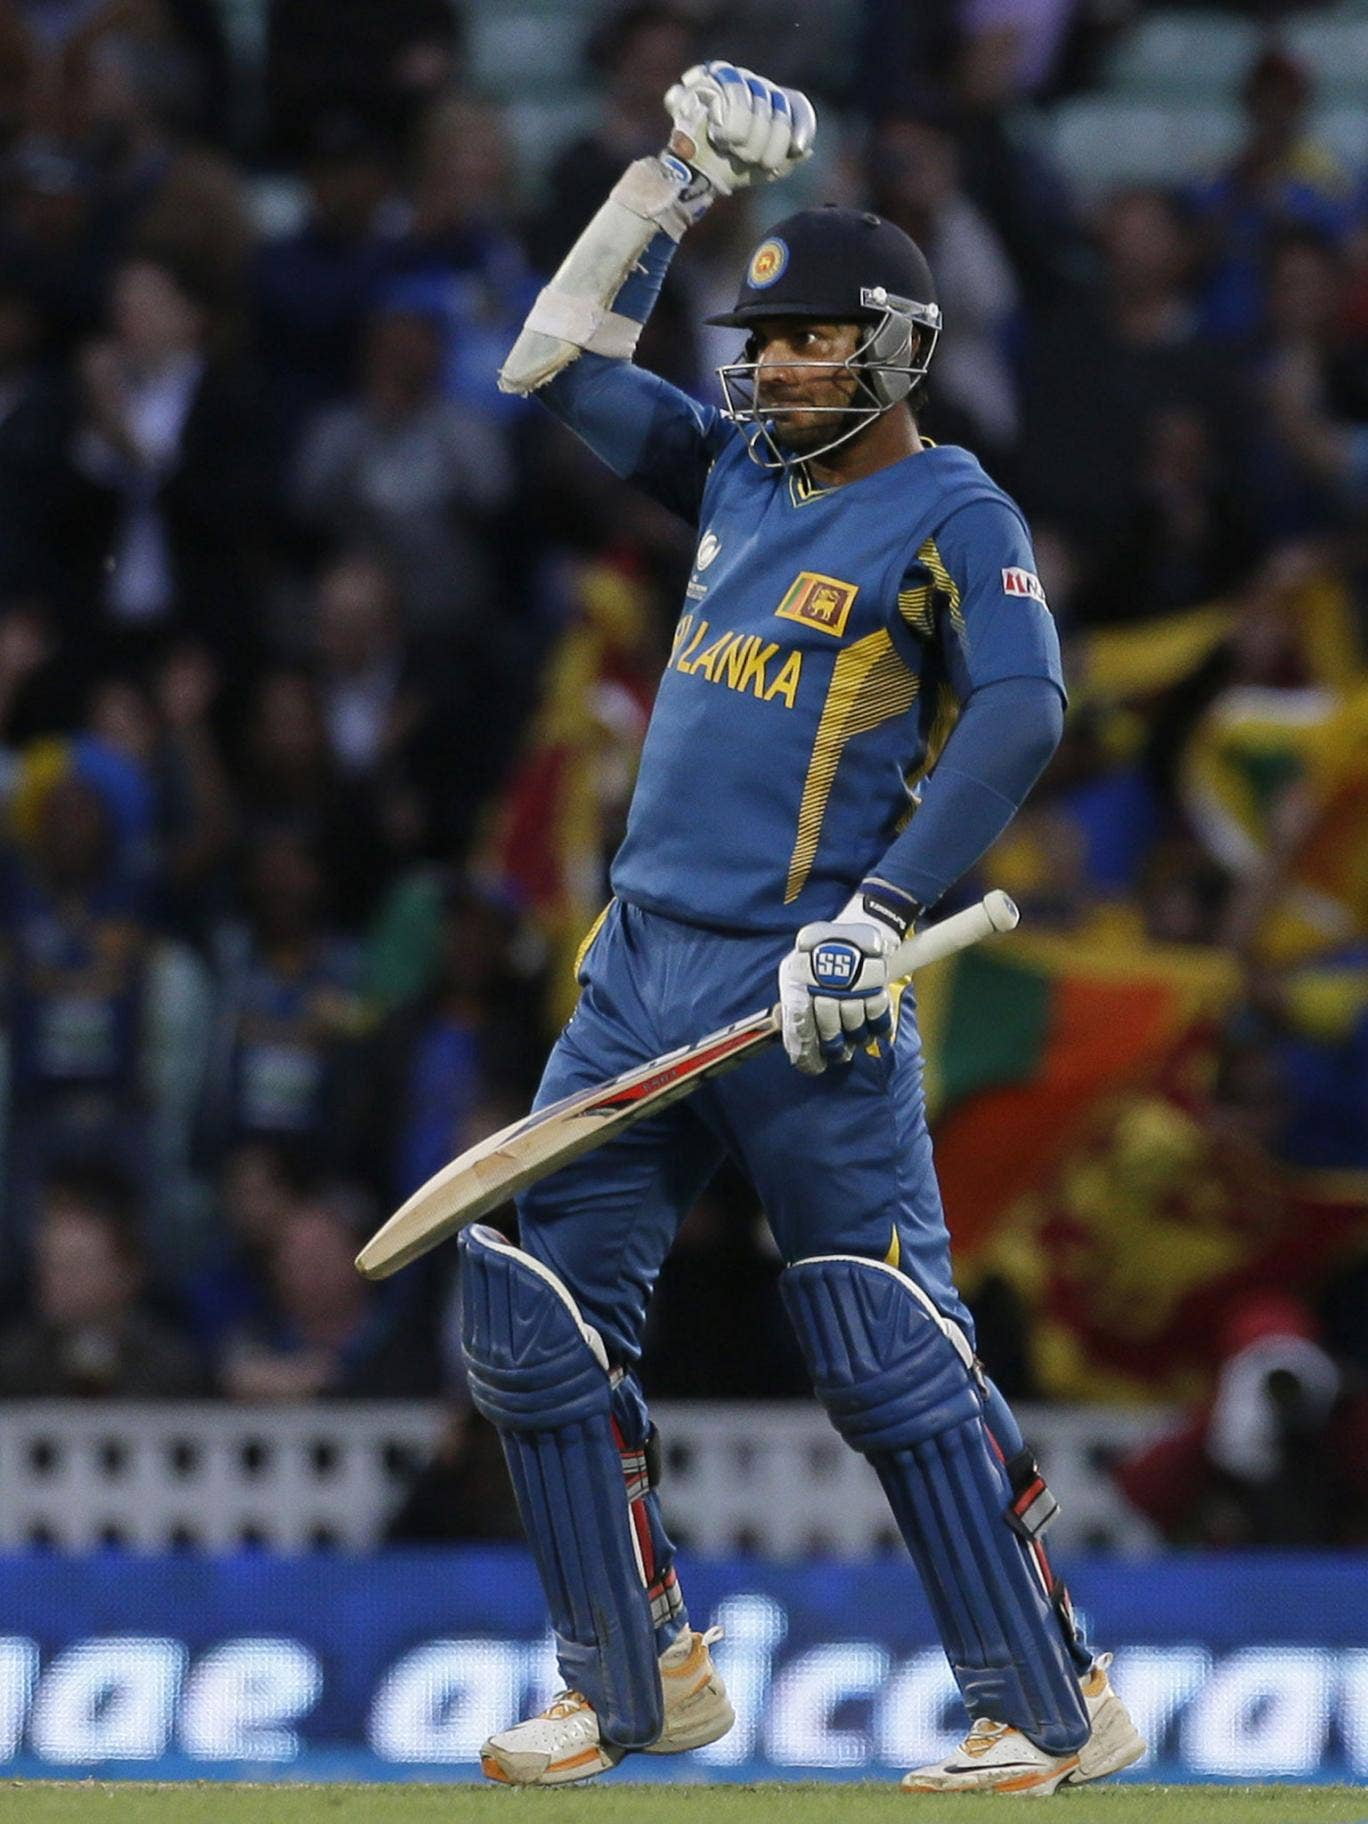 Sri Lanka's Kumar Sangakkara punches the air after he hit the winning runs to defeat England in their ICC Champions Trophy cricket match at the Oval cricket ground in London